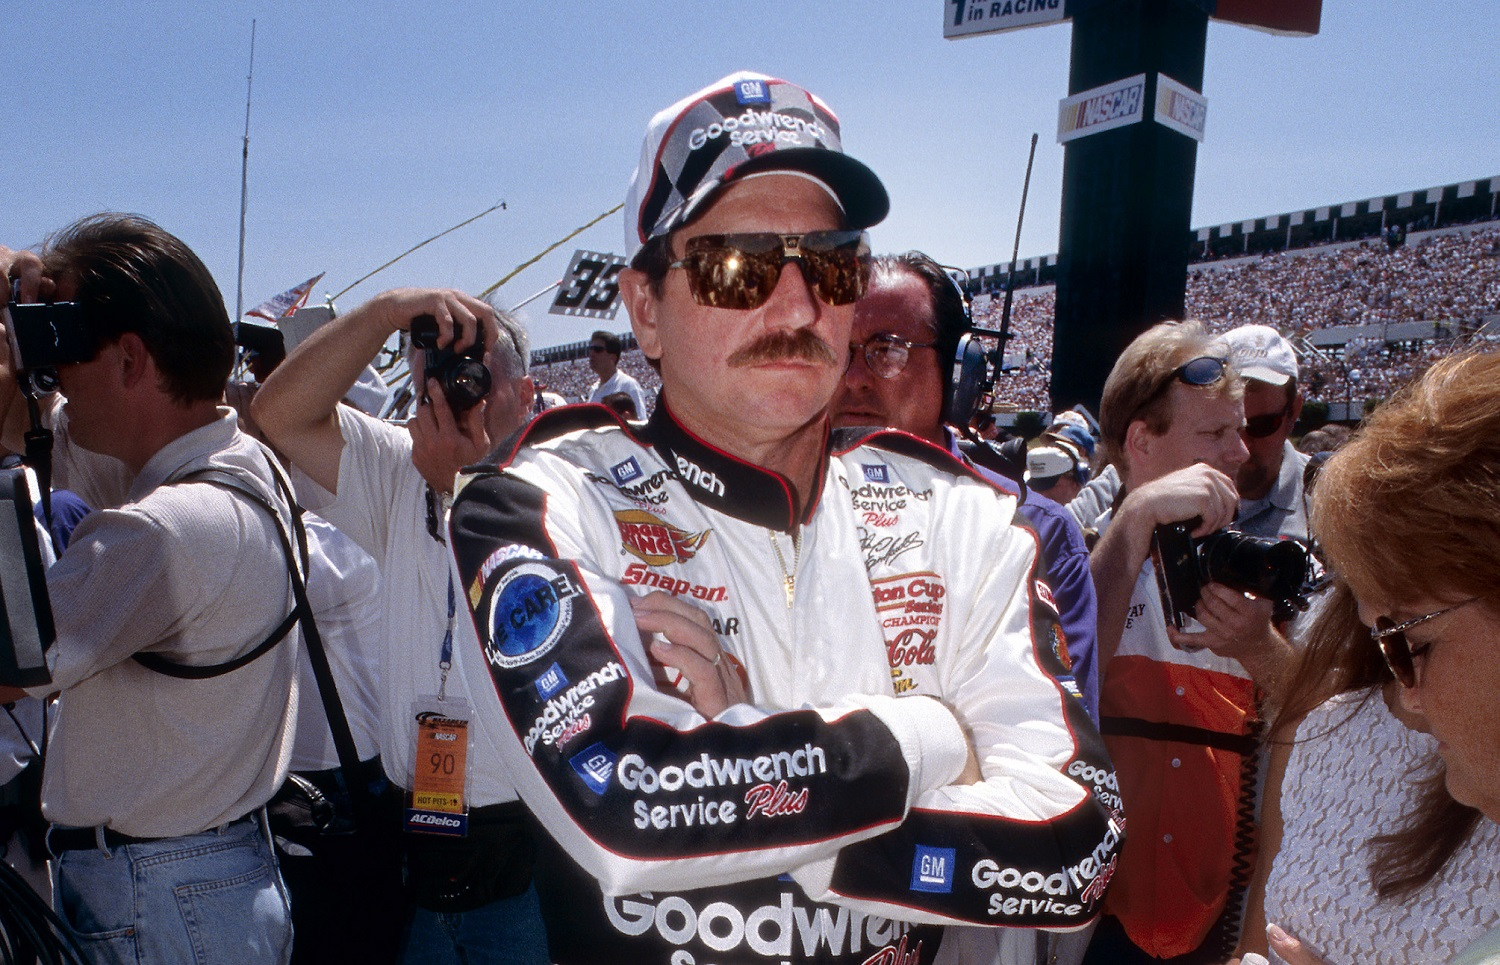 Dale Earnhardt in the infield before driver introductions for the 1999 Pocono 500 in the NASCAR Cup Series